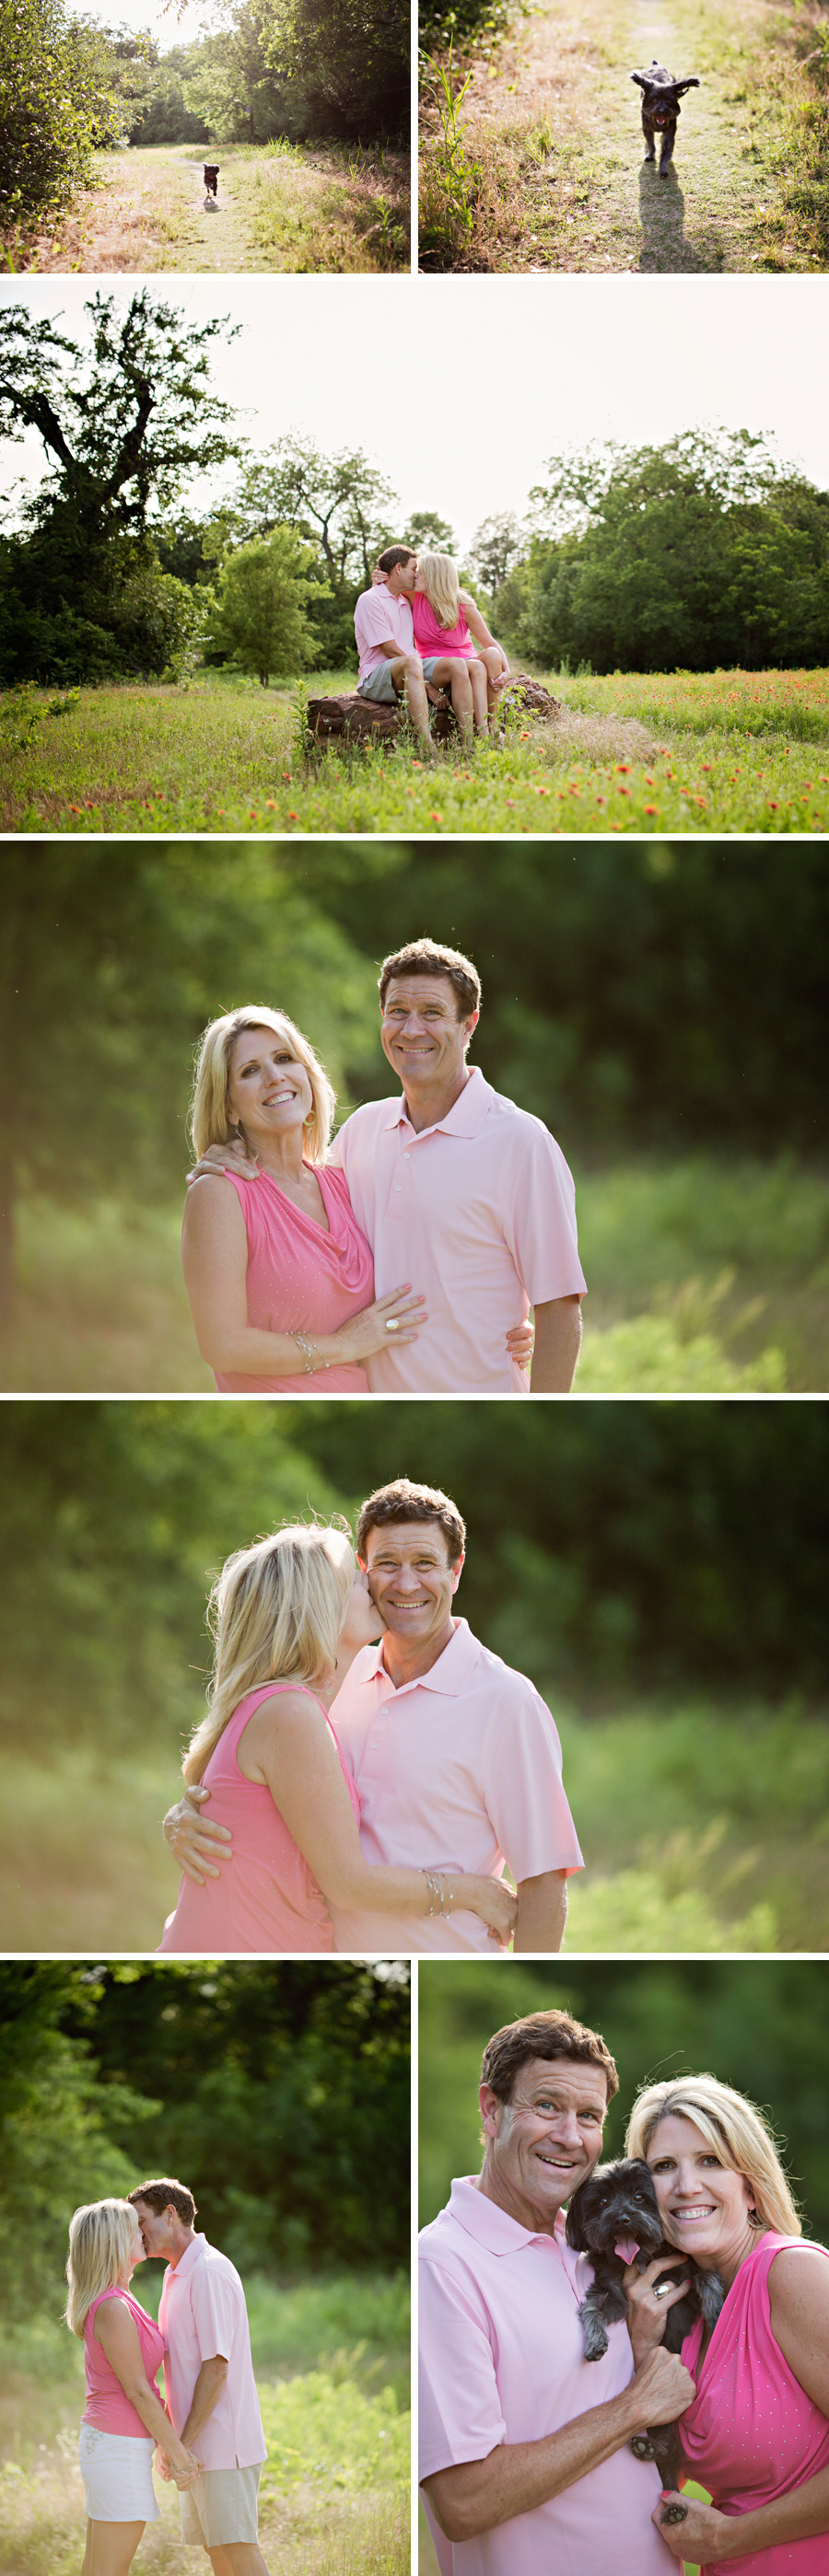 Dallas-Couple's-Photographerc002